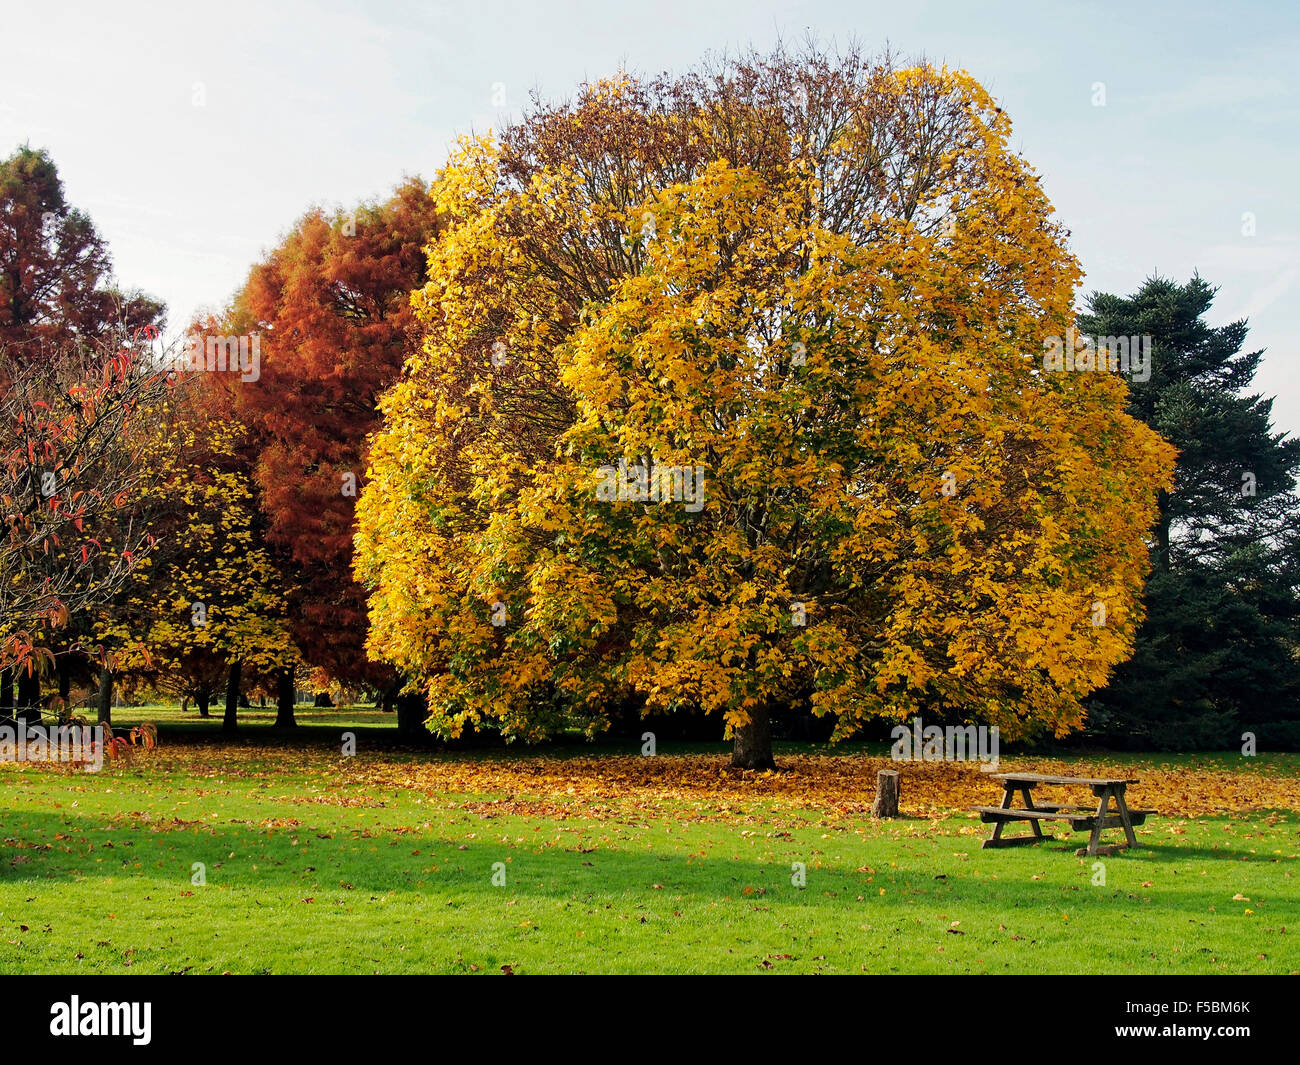 Brilliant autumn leaf colours in parkland at Sir Harold Hillier Gardens, Ampfield Hampshire - Stock Image